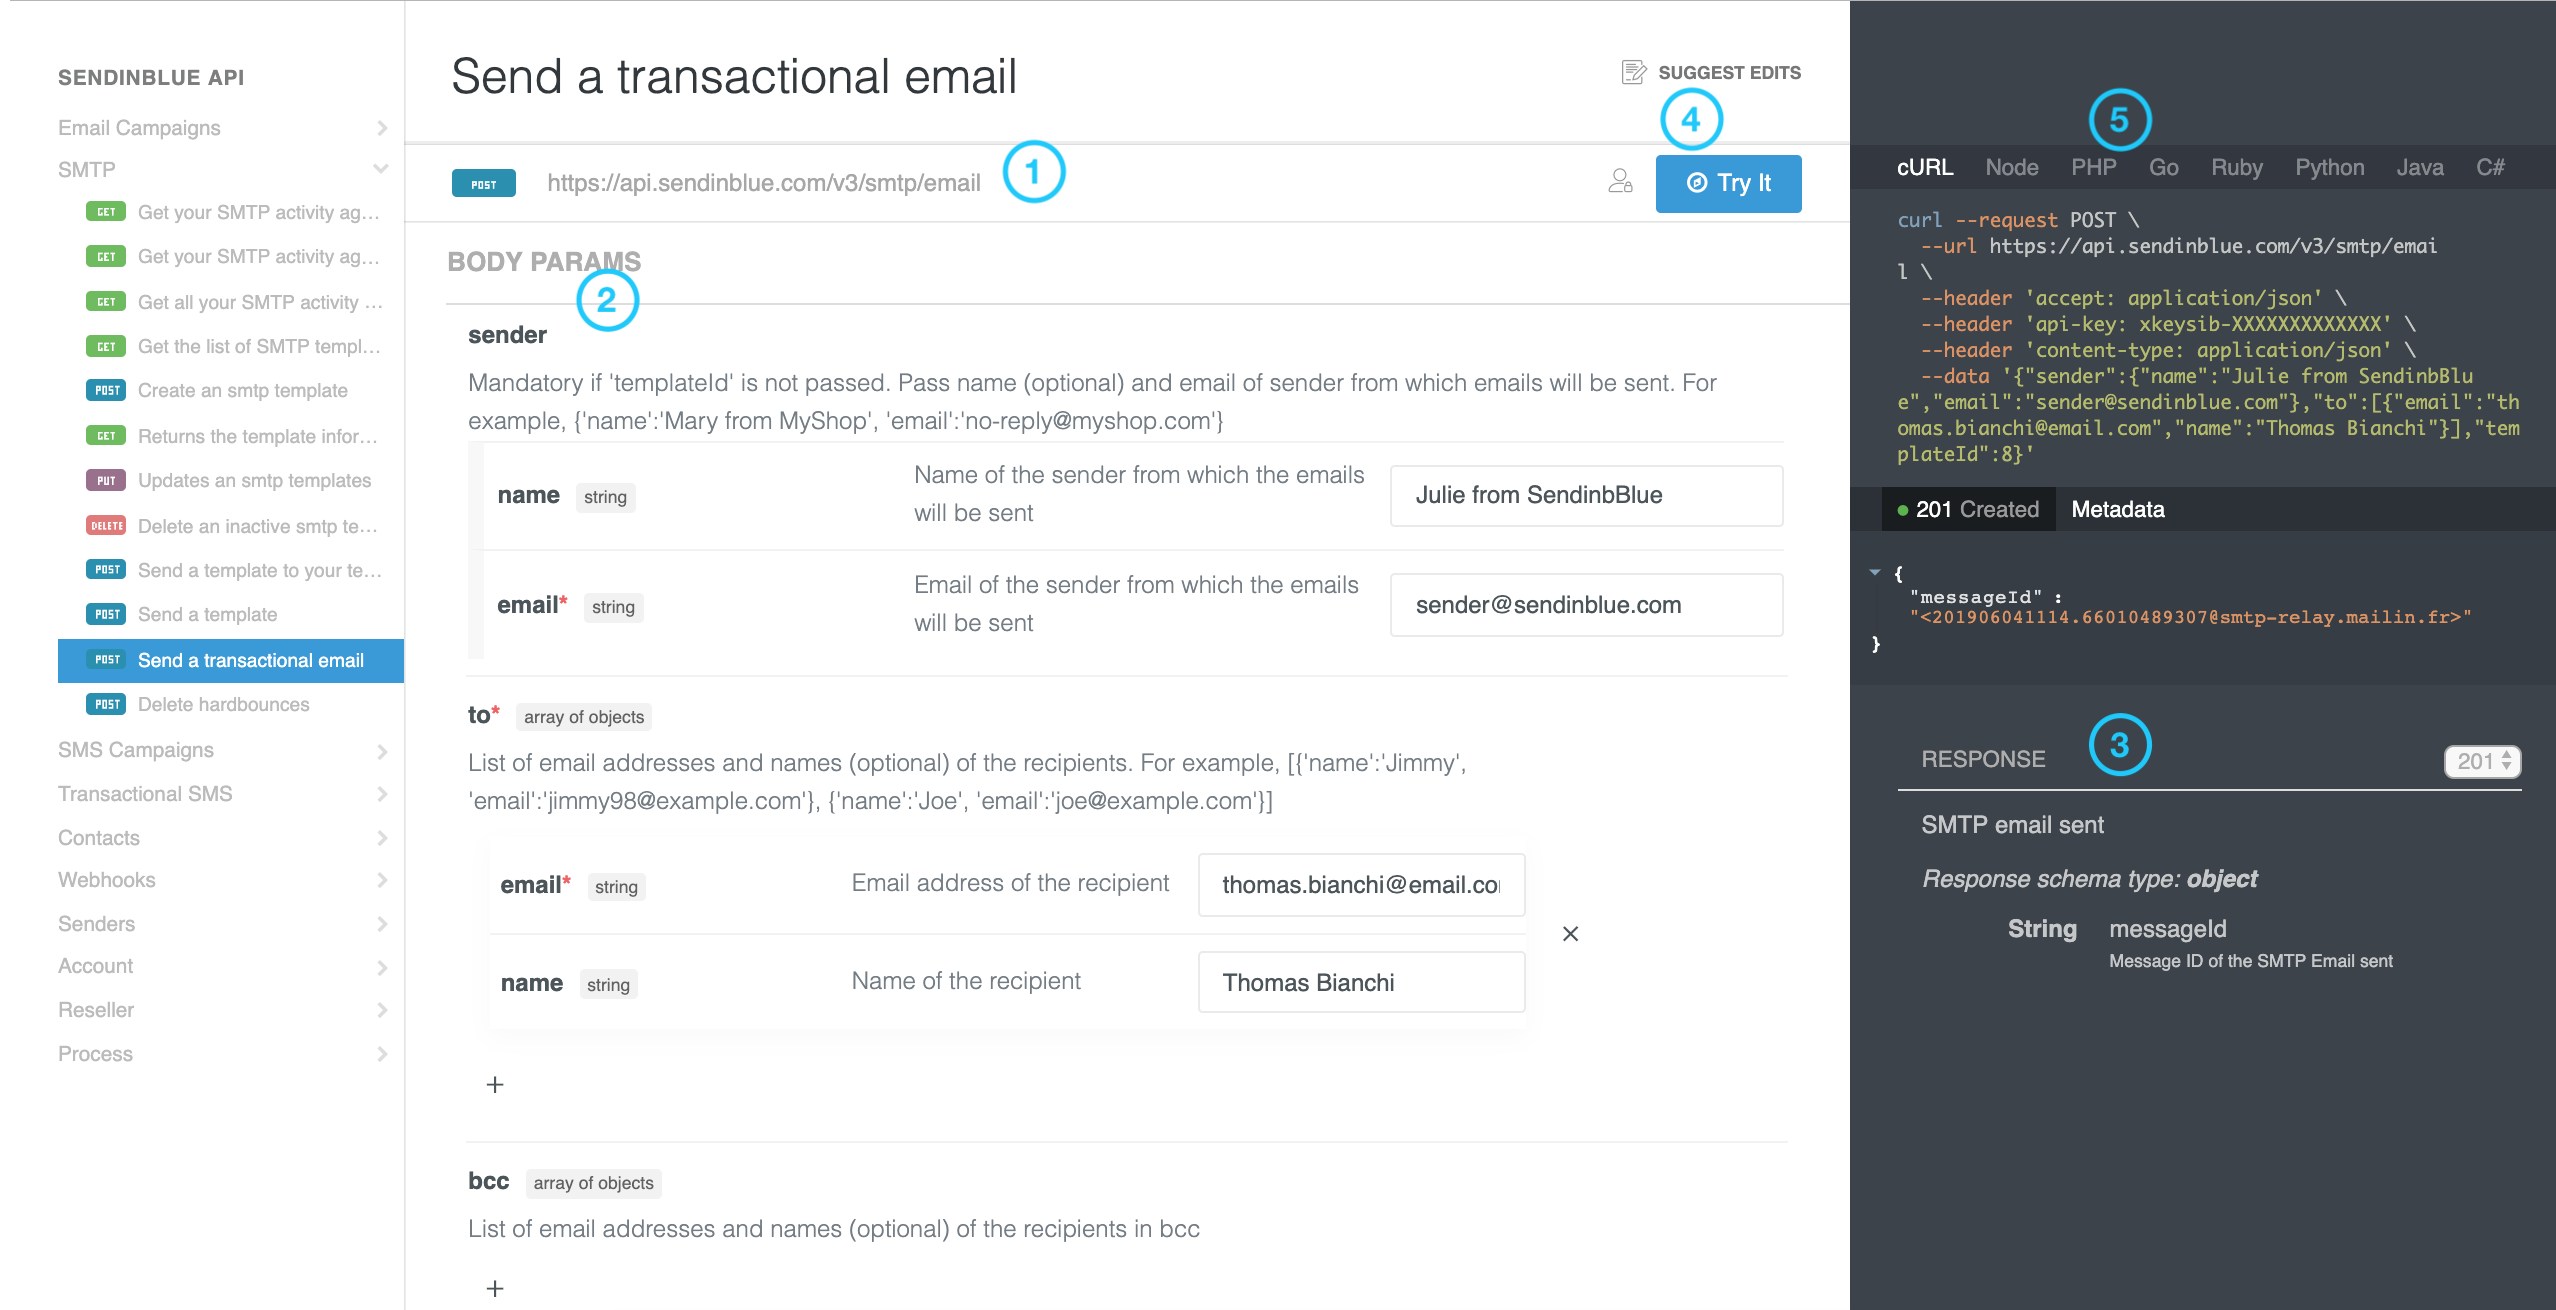 Send A Transactional Email